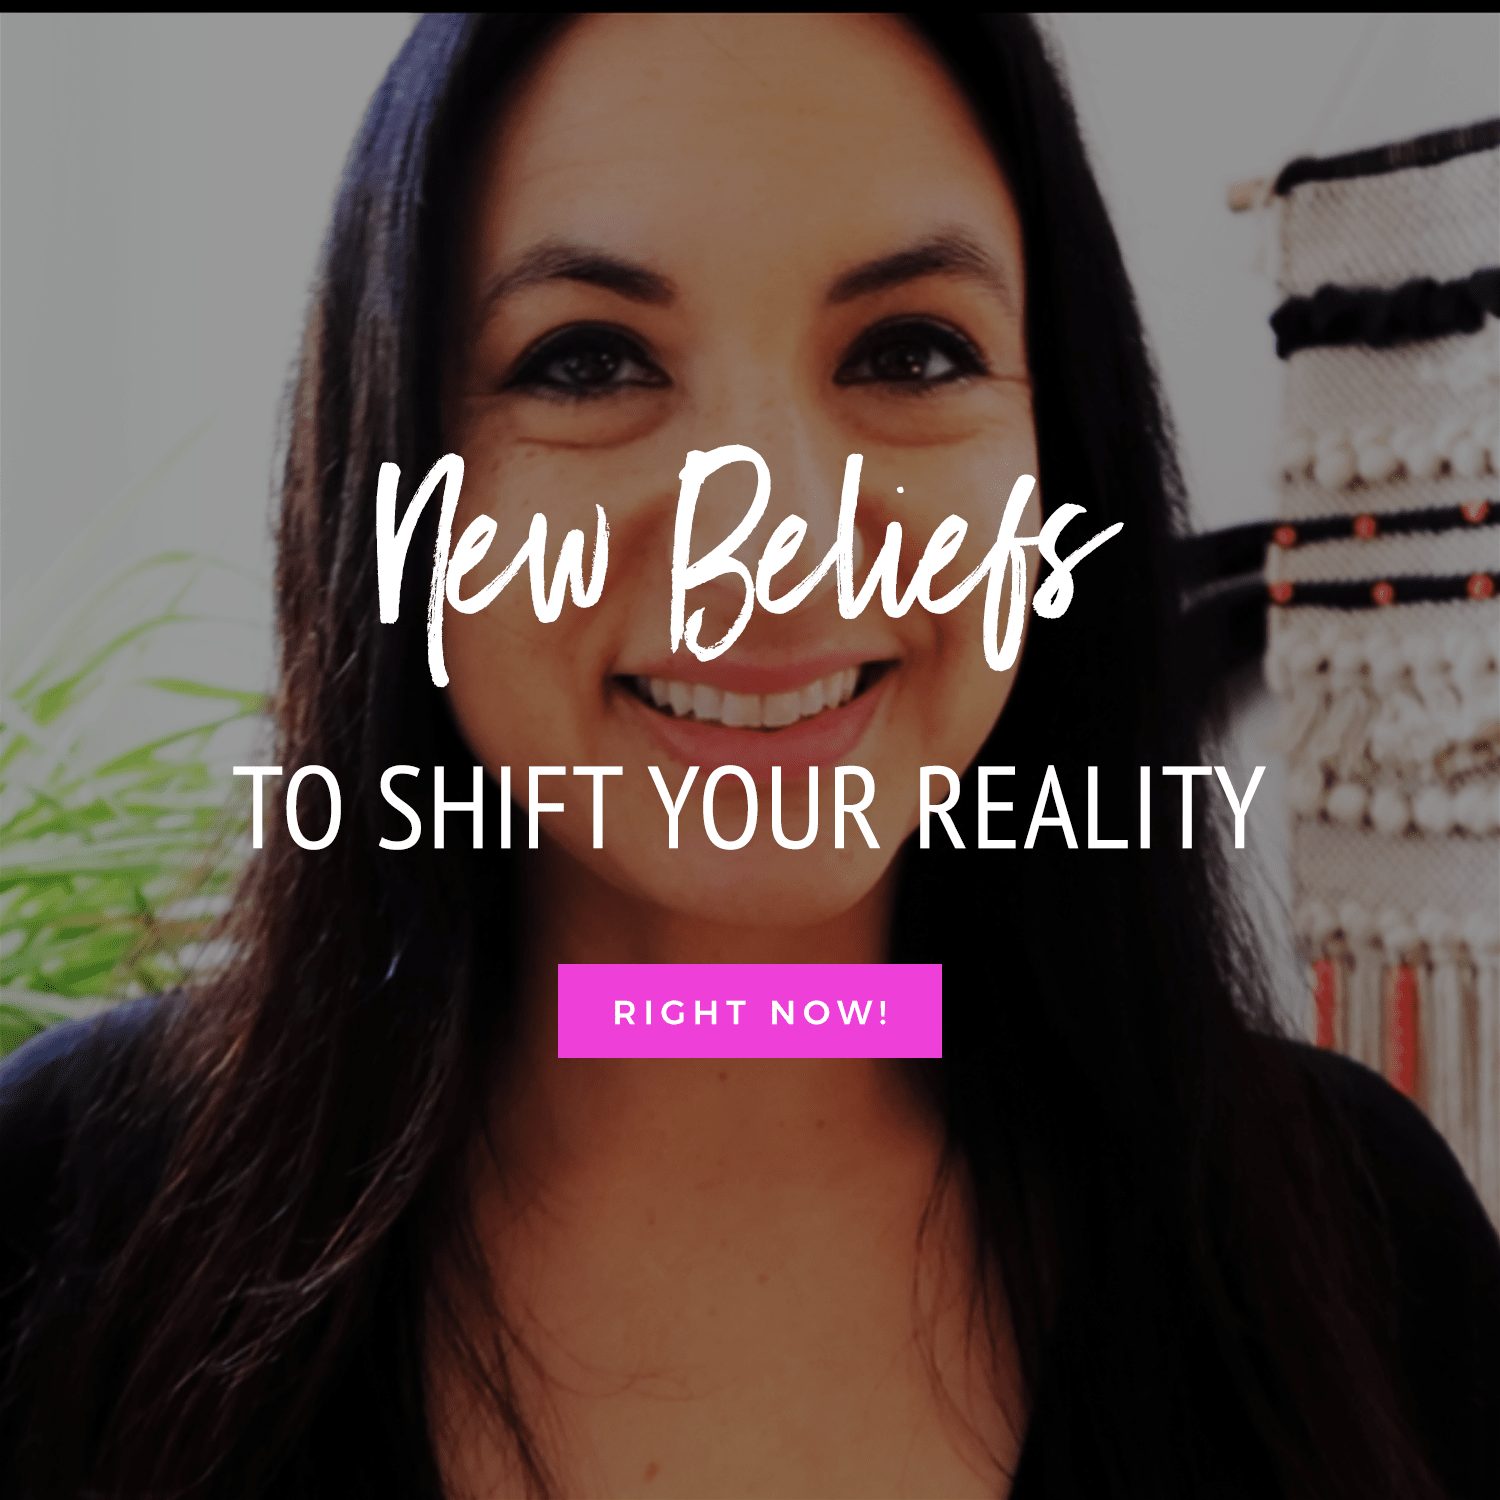 5 New Beliefs To Shift Your Reality Right NOW